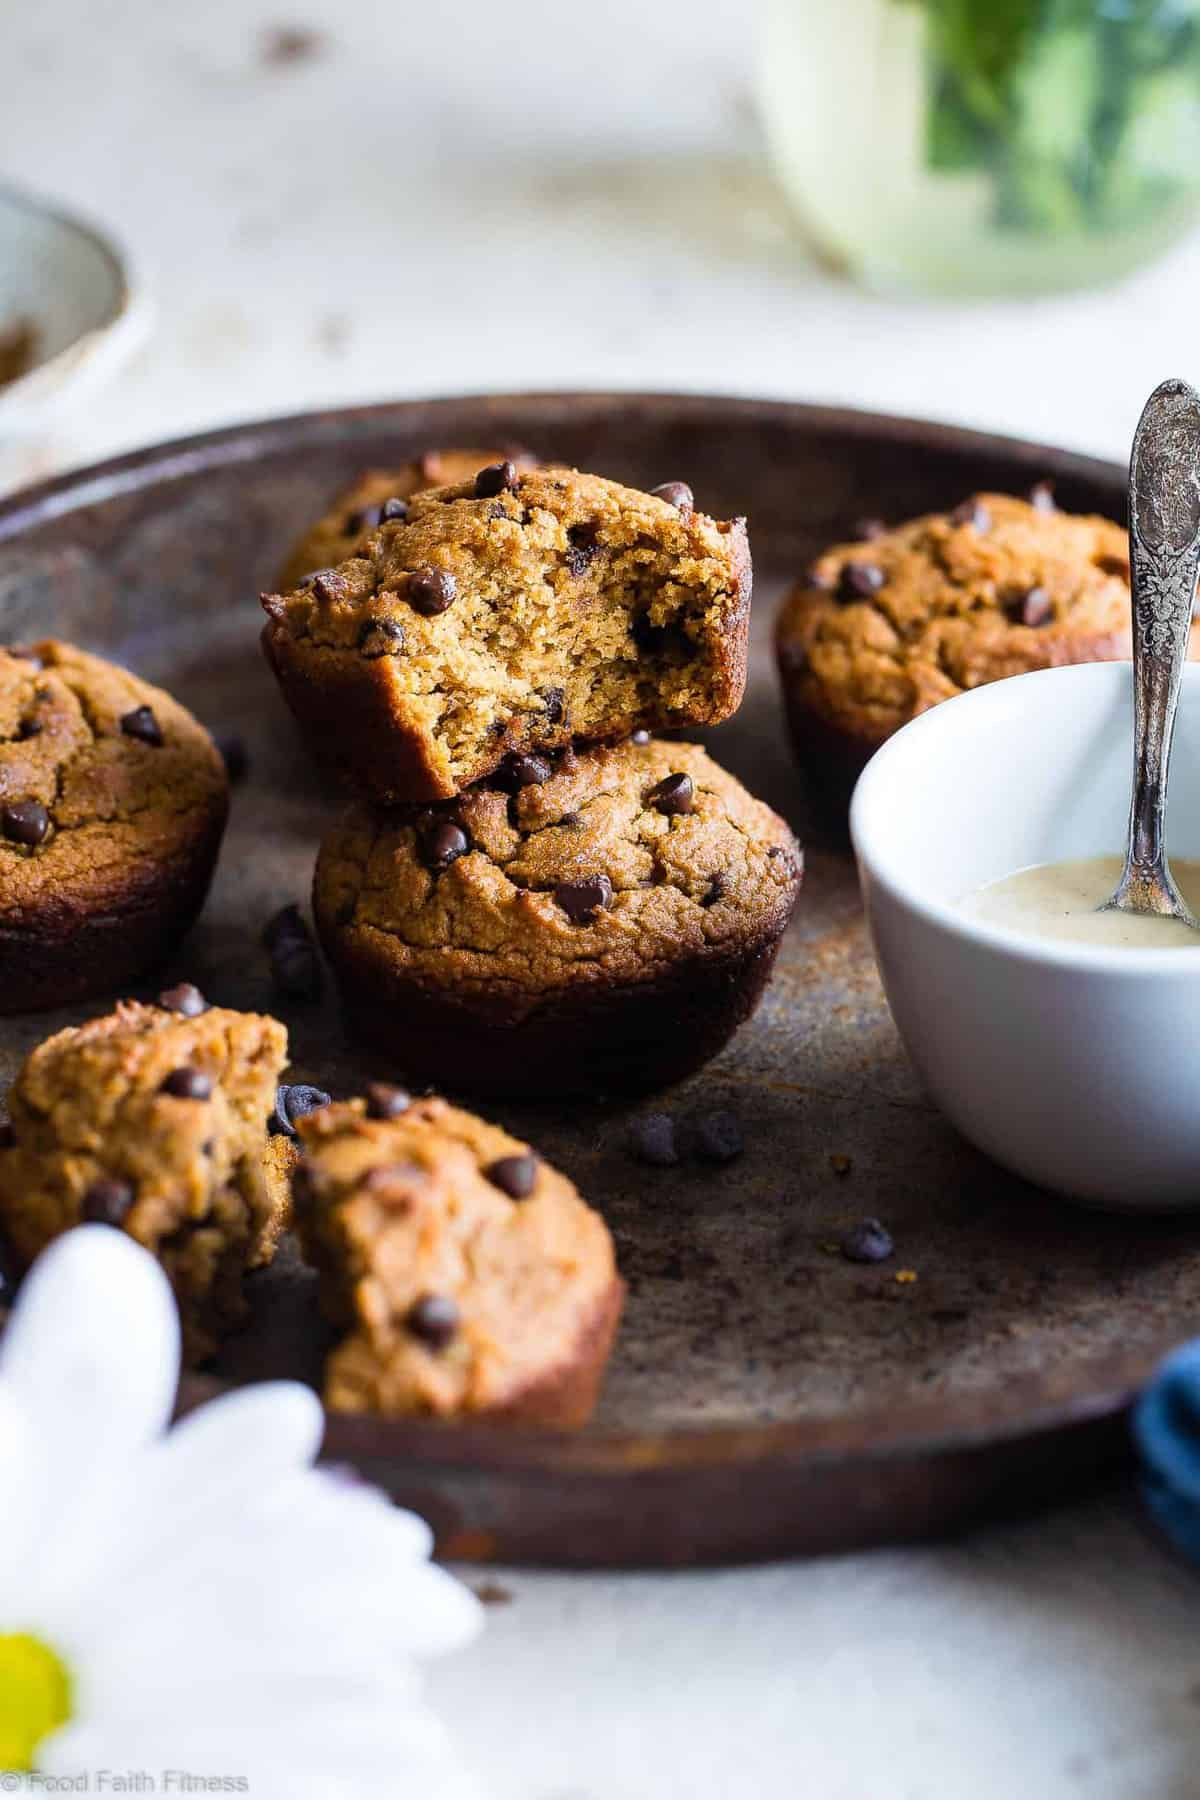 Gluten Free Spiced Chocolate Chip Sweet Potato Muffins - These healthy gluten free sweet potato muffins are packed with spicy-sweetness and lots of chocolate chips! Paleo friendly, made in one bowl and SO fluffy! | #Foodfaithfitness | #Glutenfree #Healthy #Paleo #Dairyfree #Muffins